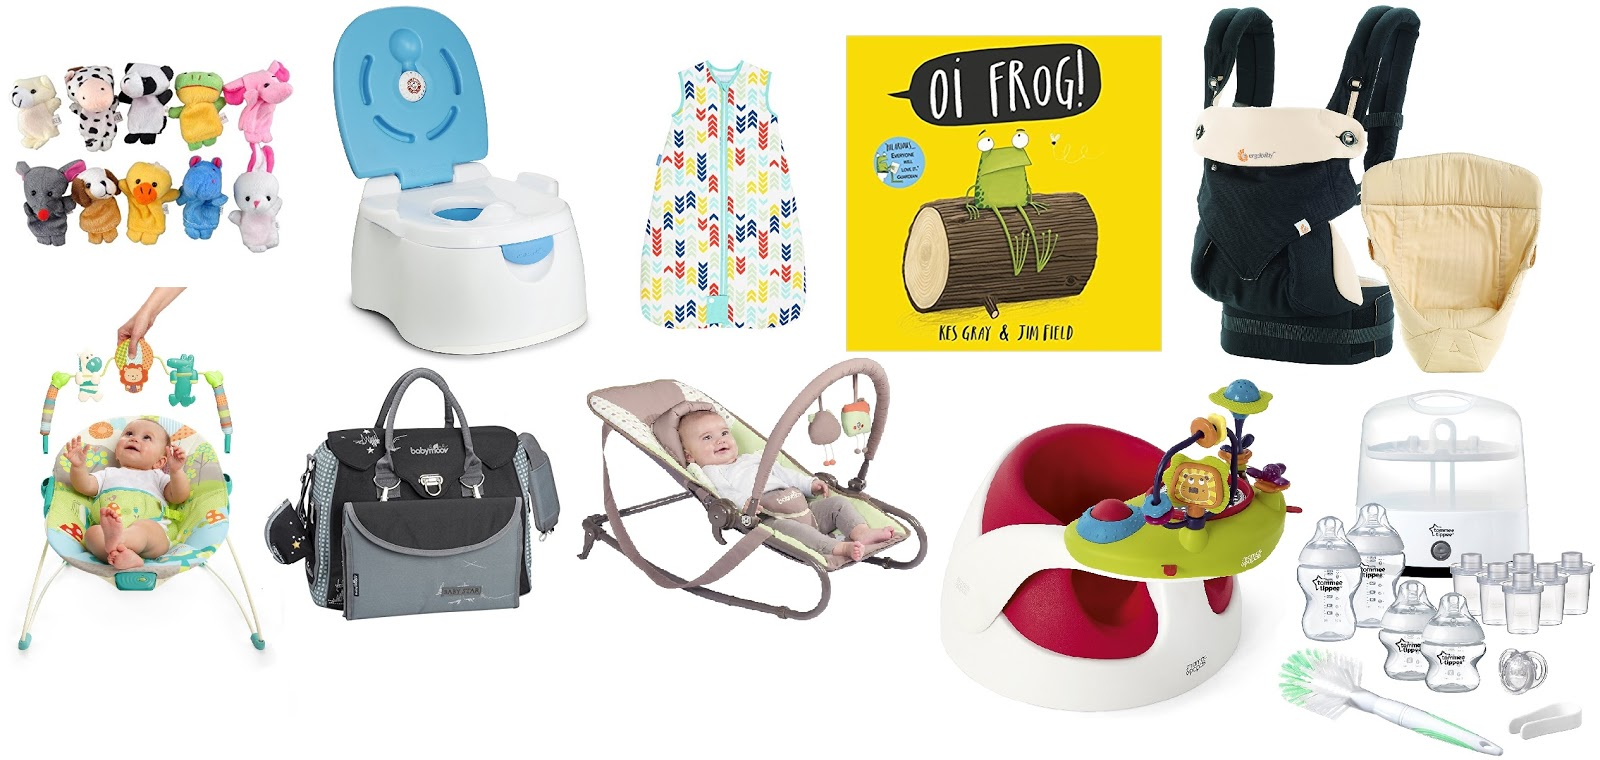 AWESOME BLACK FRIDAY DEALS 2017 baby products   LOVE, MAISIE   www.lovemaisie.com